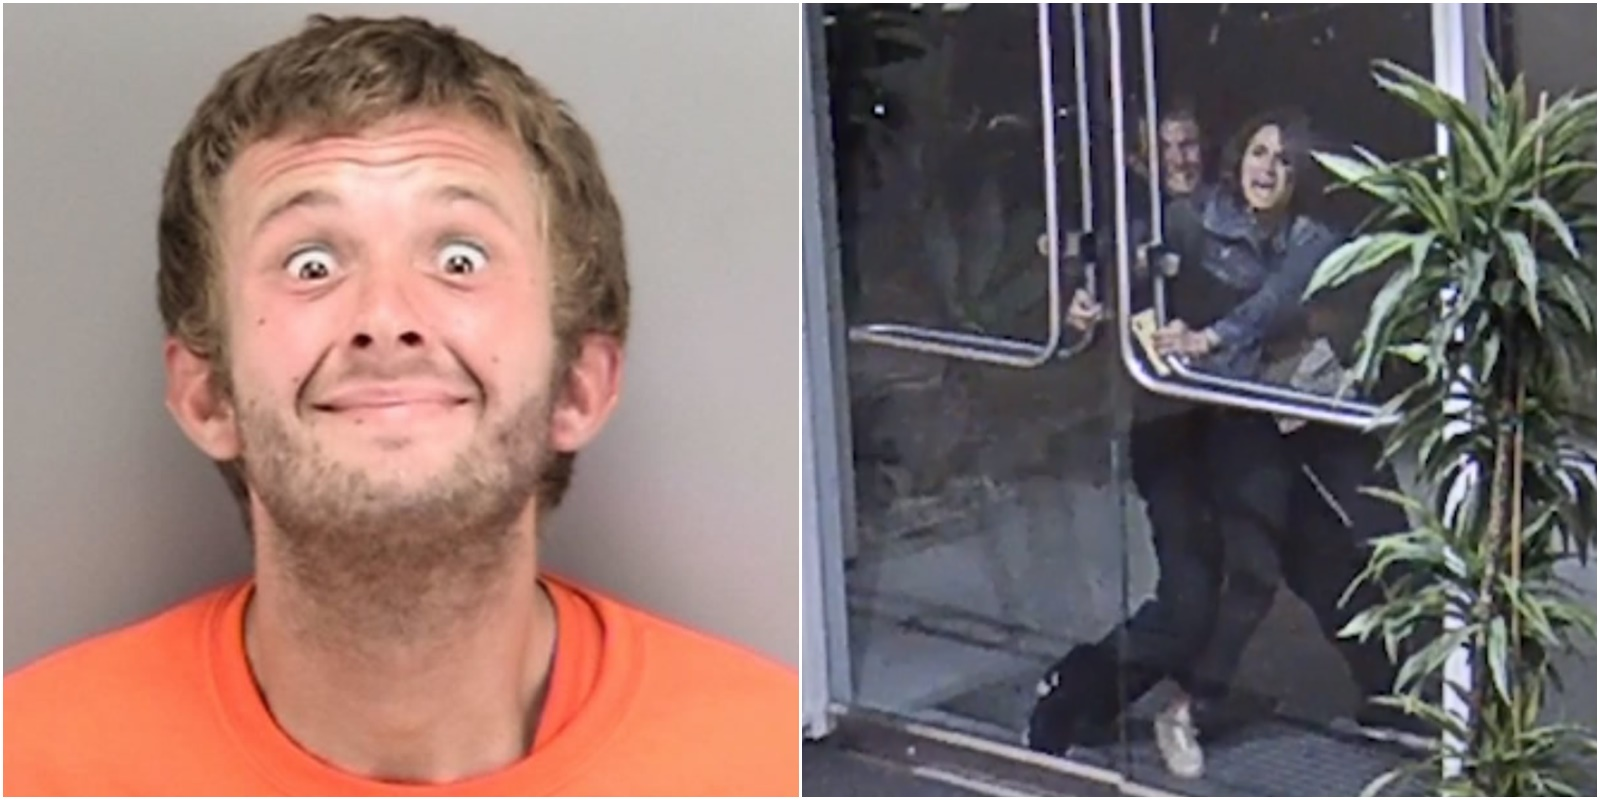 A San Fransisco Judge Releases Homeless Man That Viscously Attacked a Woman at Her Apartment